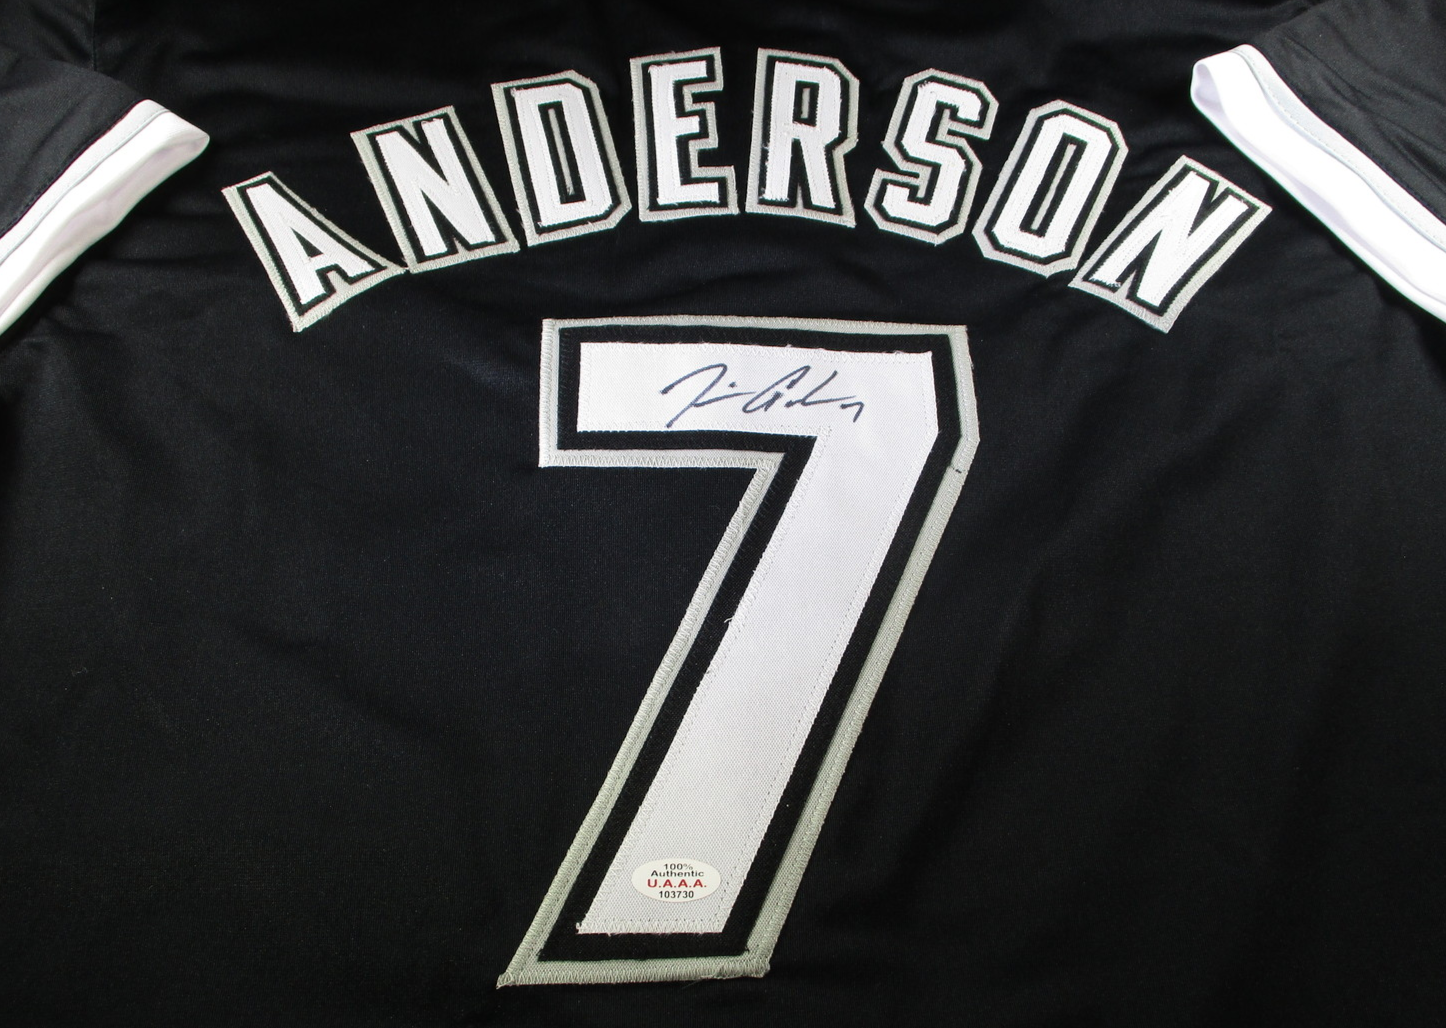 TIM ANDERSON / AUTOGRAPHED CHICAGO WHITE SOX CUSTOM BASEBALL JERSEY / COA